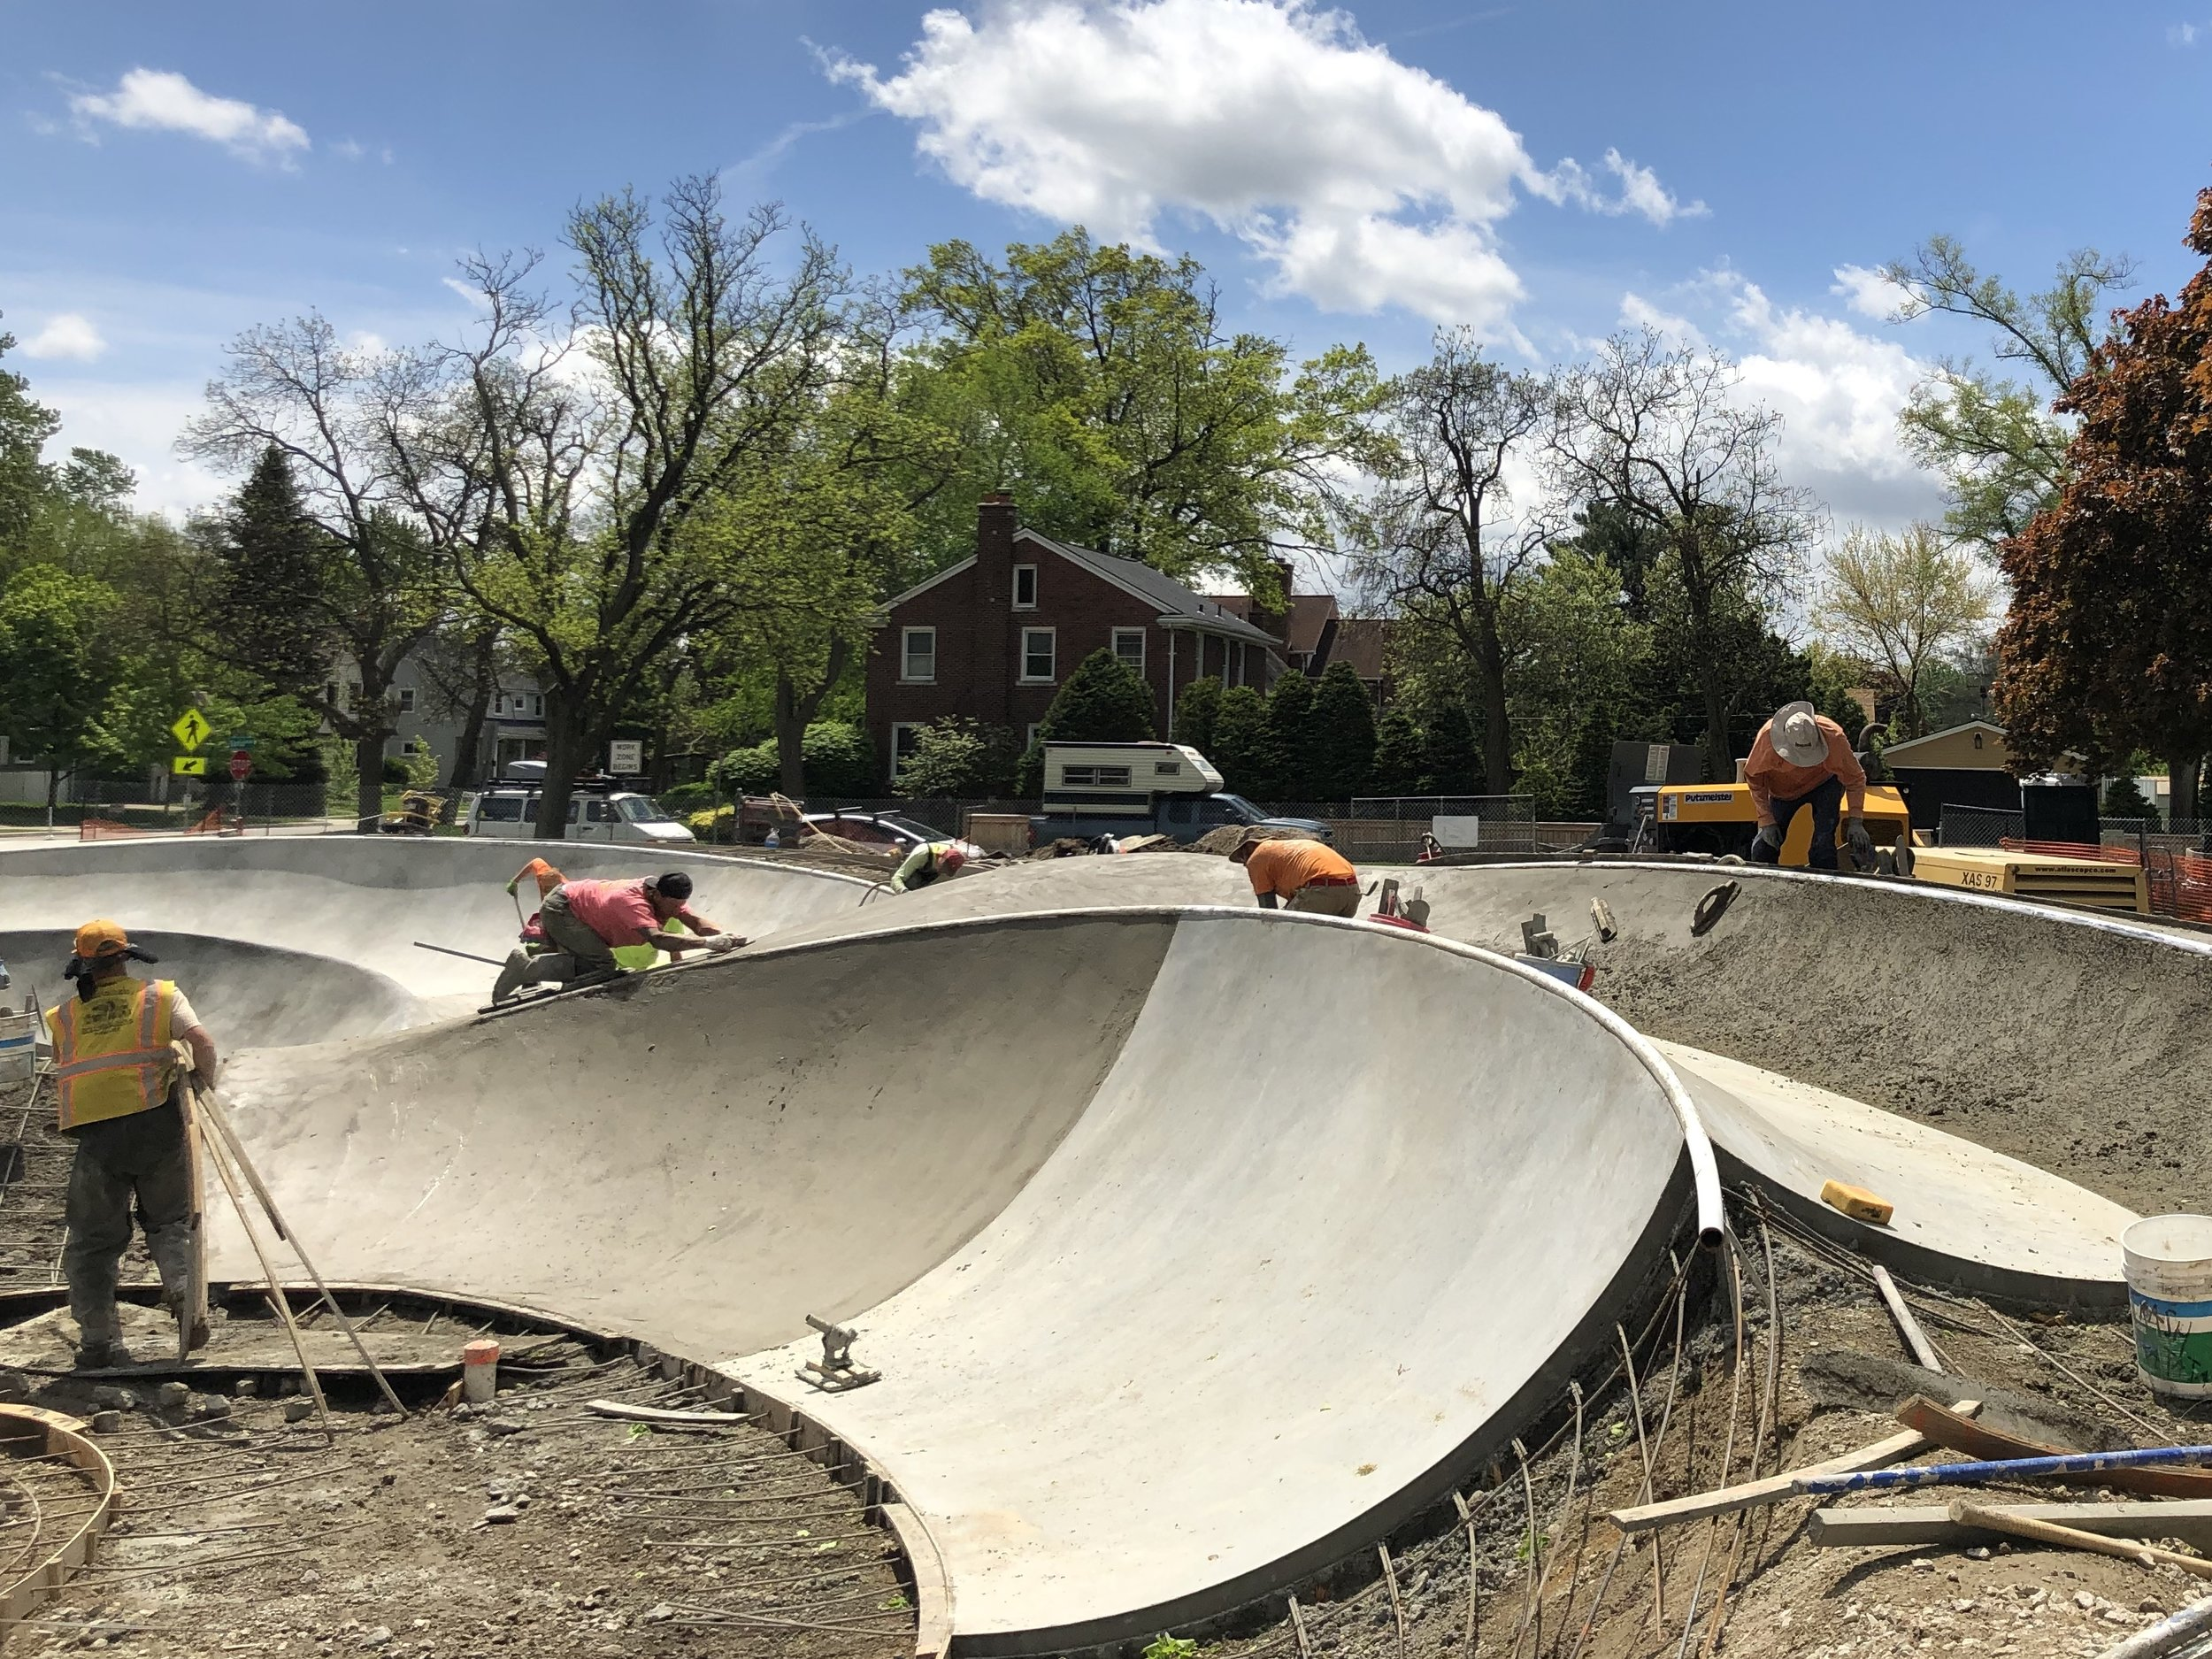 Did you know there is a skatepark renaissance going on in Michigan? 💪🏽💯We've built 6 parks there over the last few years making it one of the Midwest's best #skateboarding destinations 😀